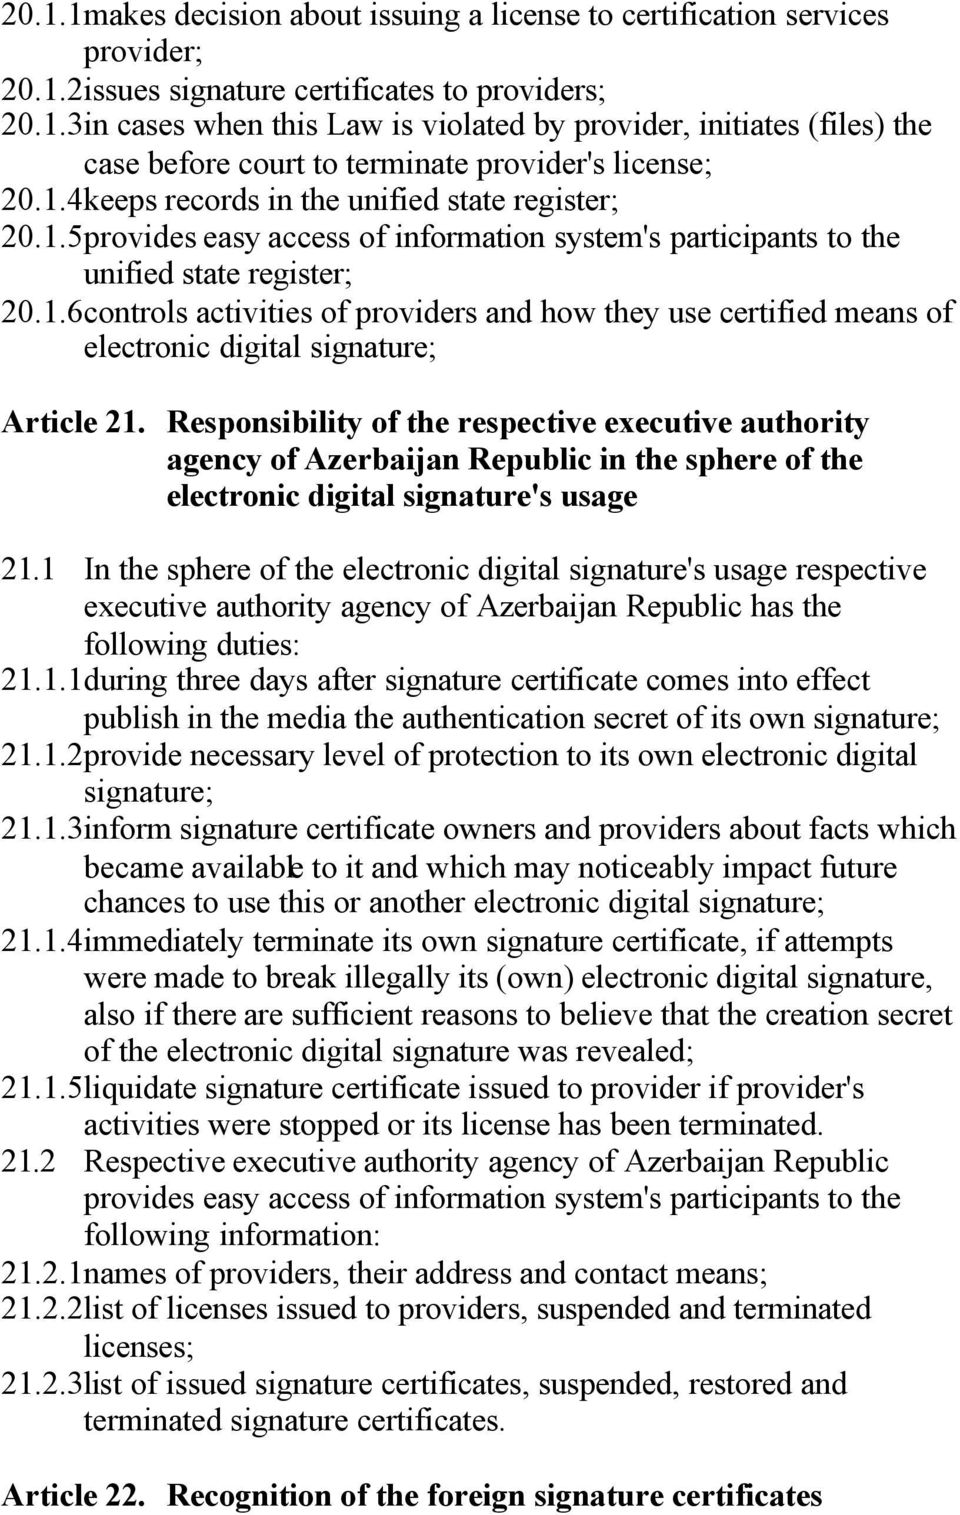 Responsibility of the respective executive authority agency of Azerbaijan Republic in the sphere of the electronic digital signature's usage 21.